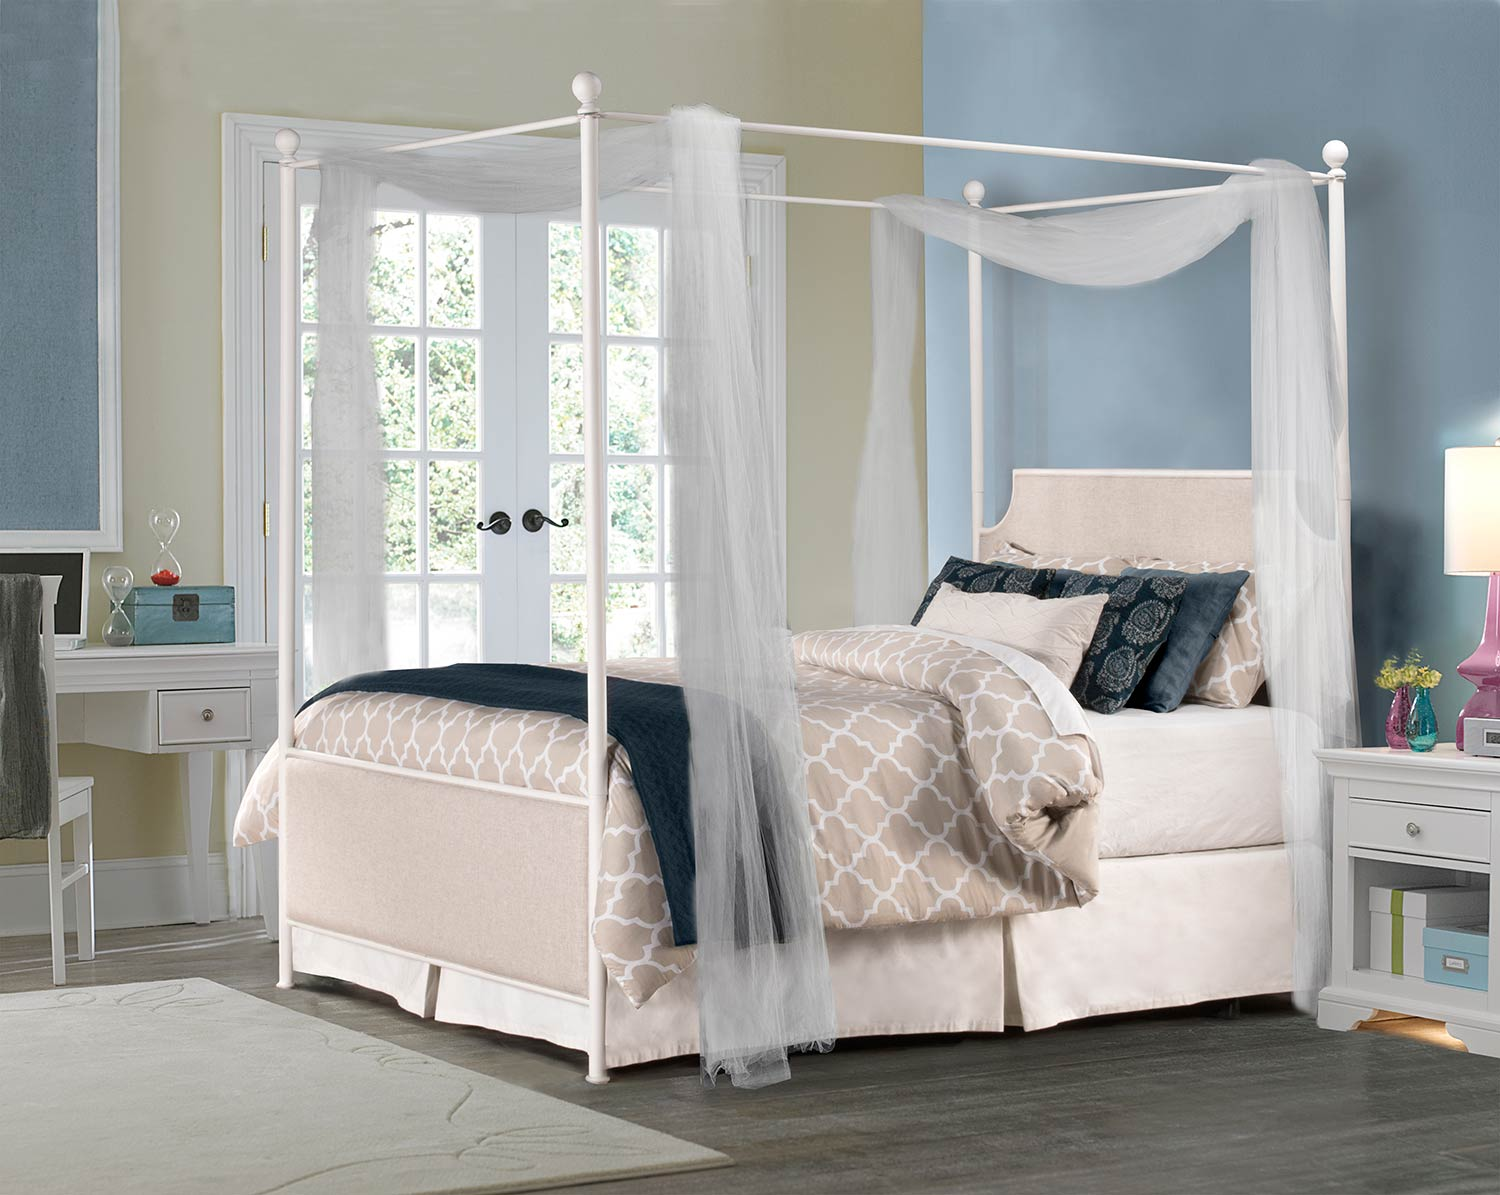 Hillsdale McArthur Canopy Bed - Off-White - Oatmeal Linen Fabric